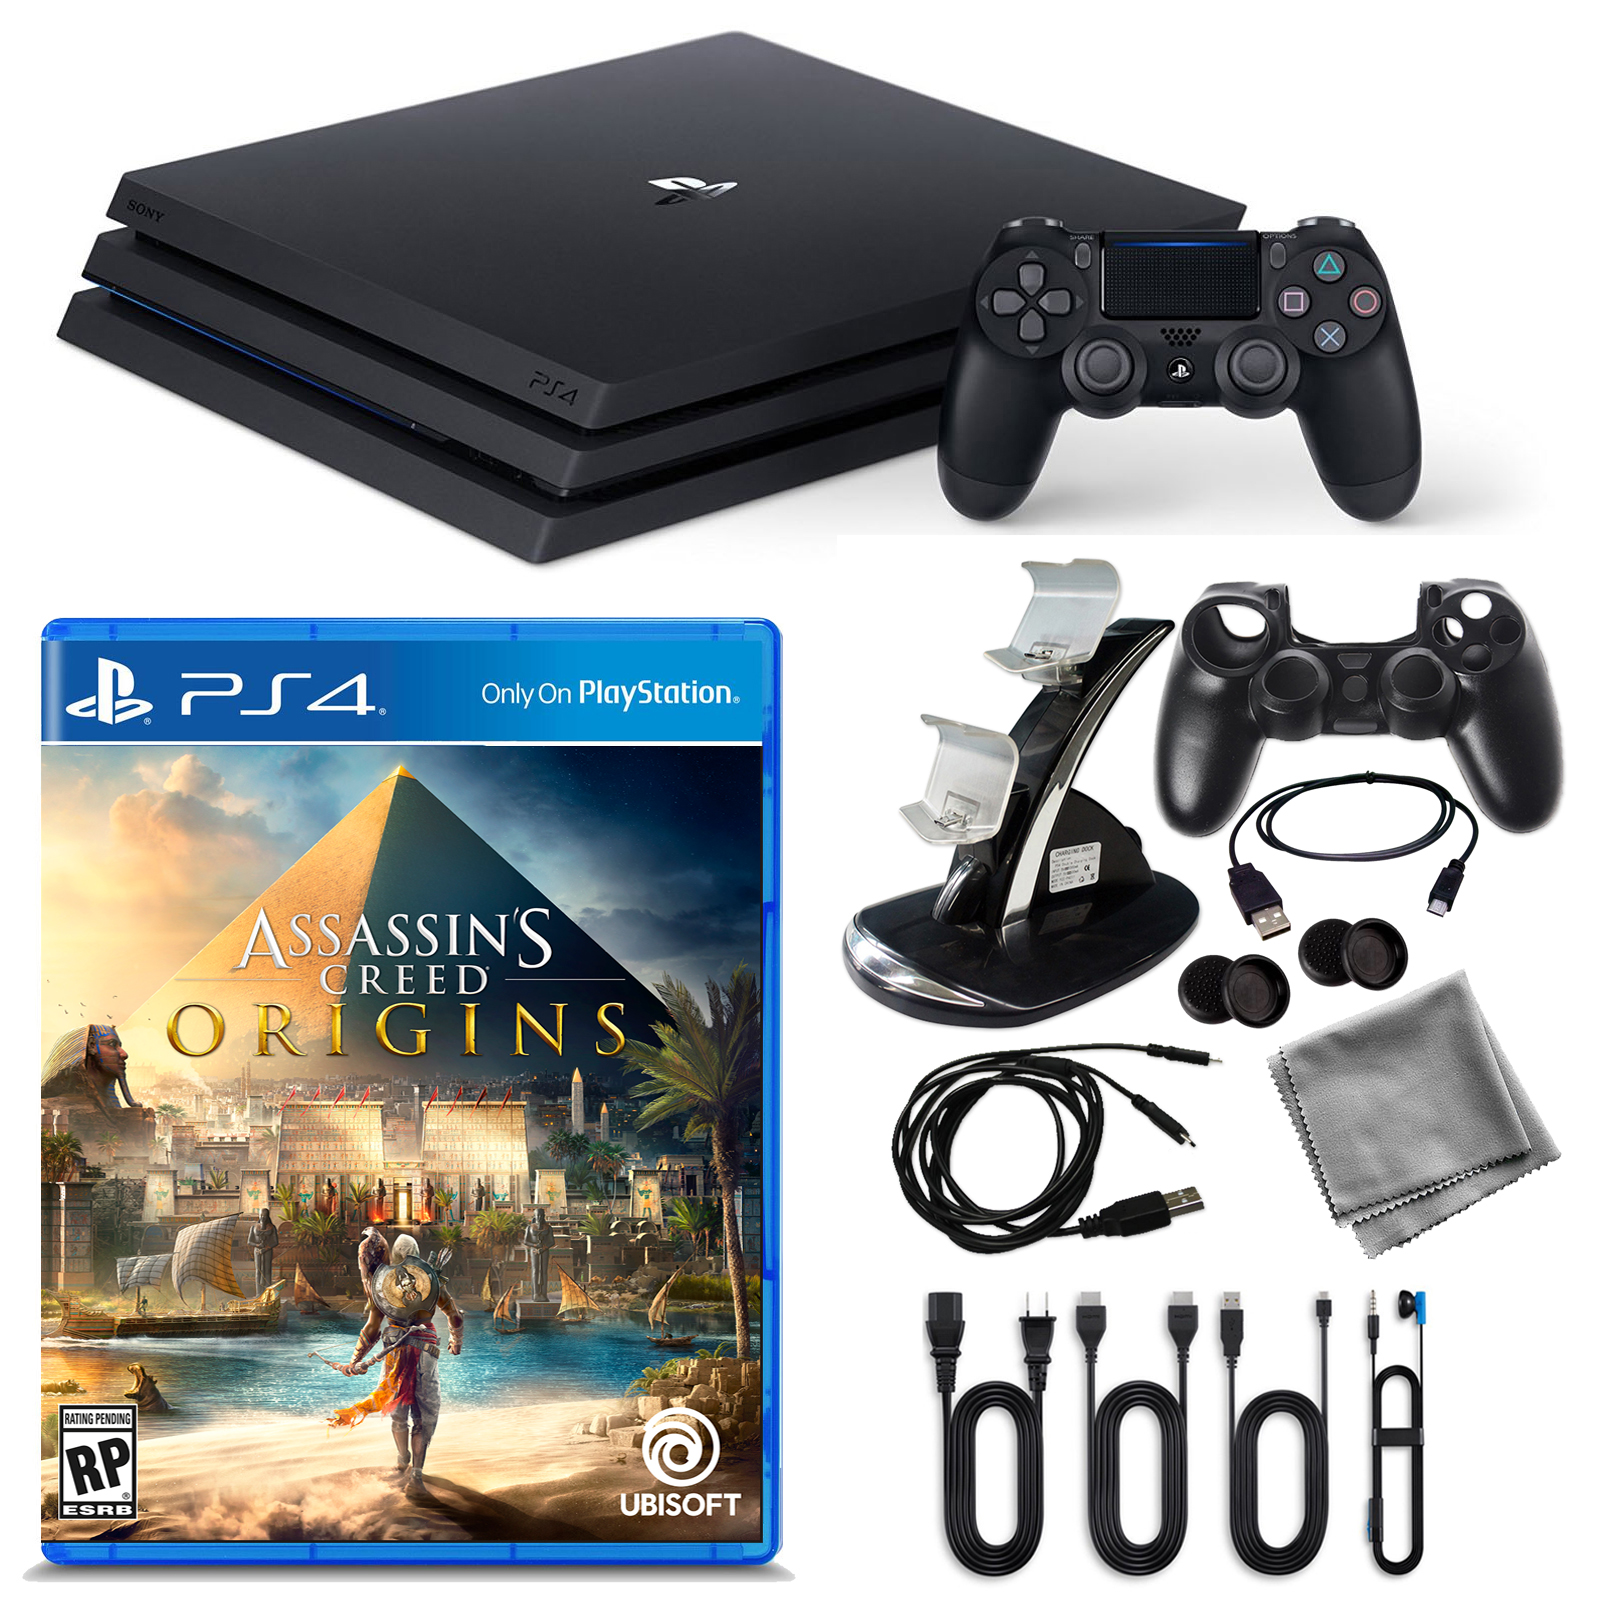 PlayStation 4 Pro 1TB Console with Assassin's Creed Origins and Accessories